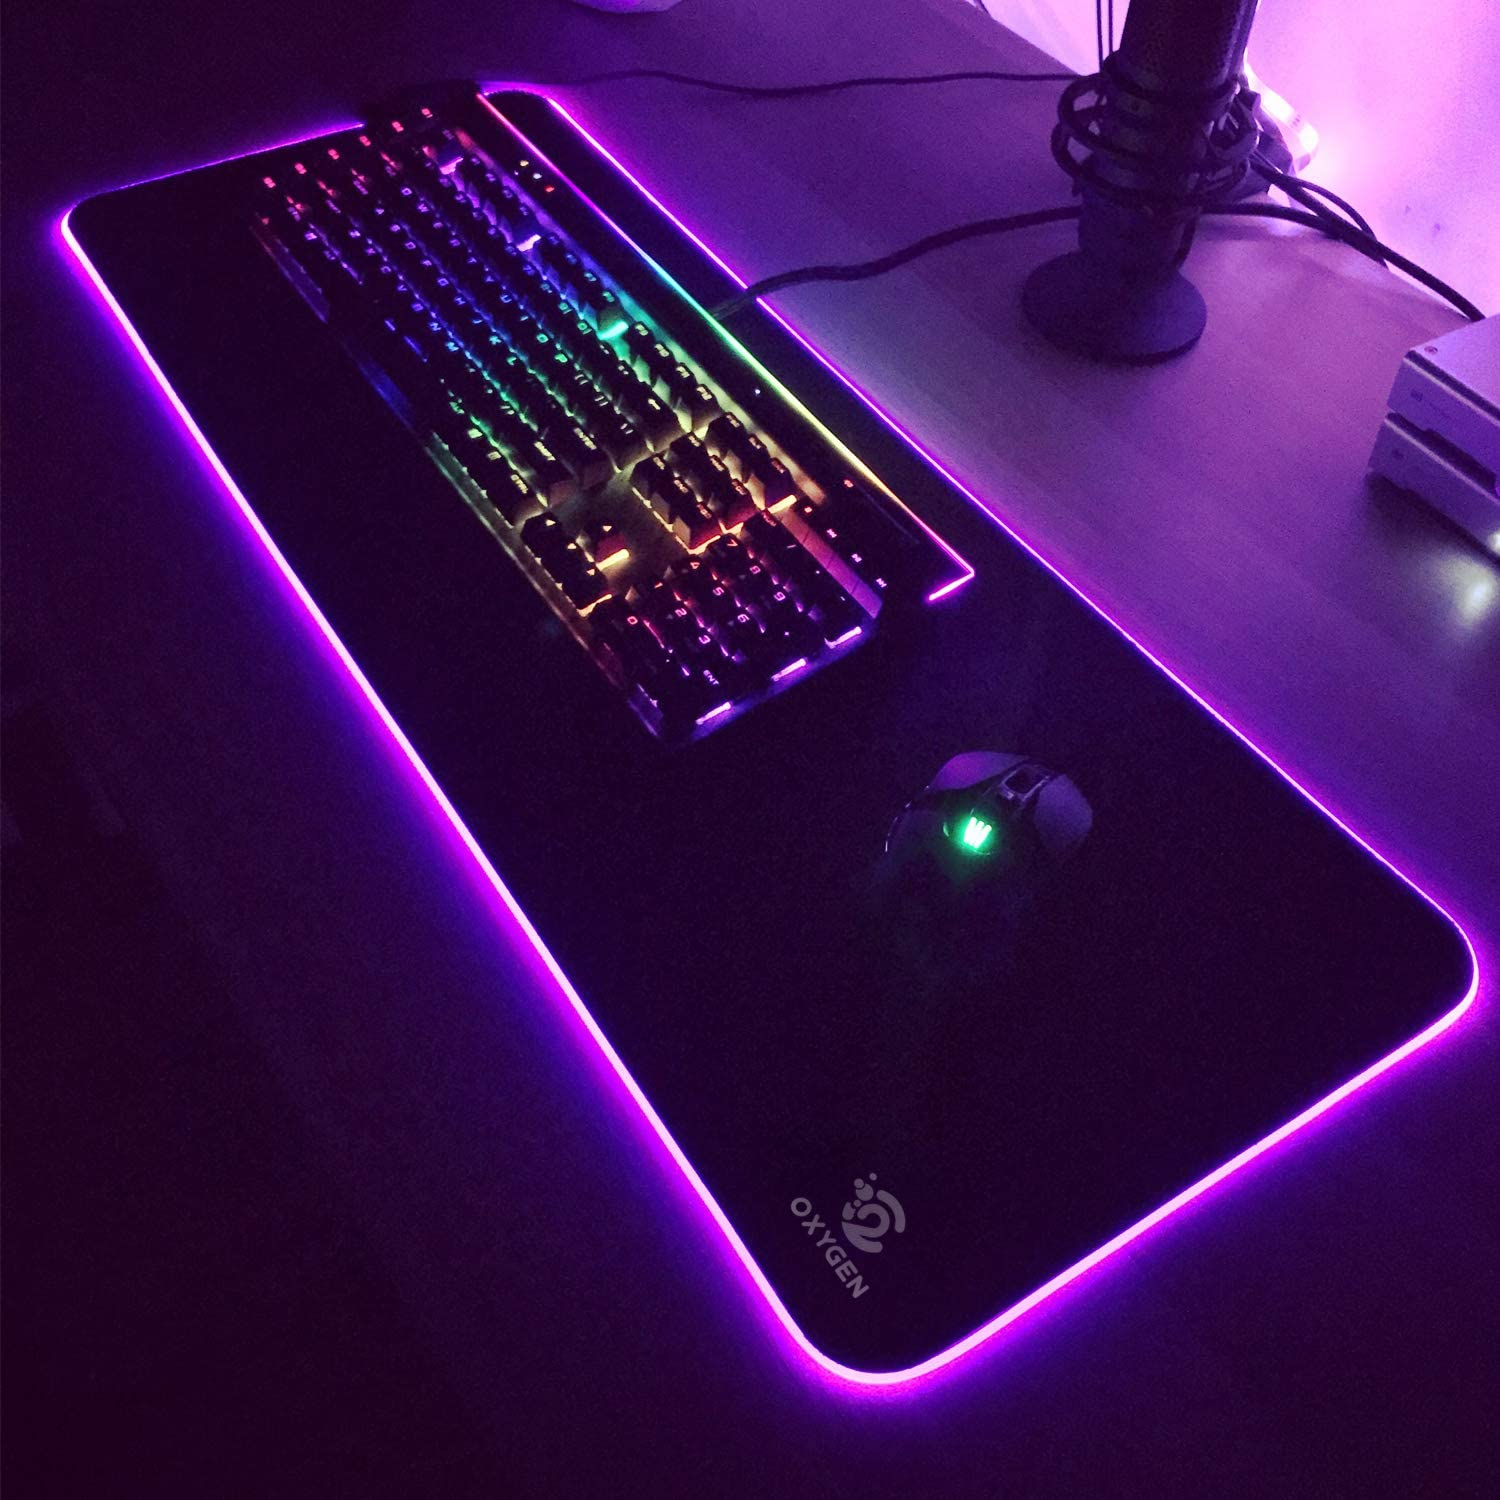 Oxygen RGB Gaming Mouse Pad Non-Slip Rubber Base Keyboard Pad Mat 31.5 X12 inch X 5mm Ultra Bright LED Light/&Soft Large Extended Mousepad with 10 Lighting Modes Water Resistance